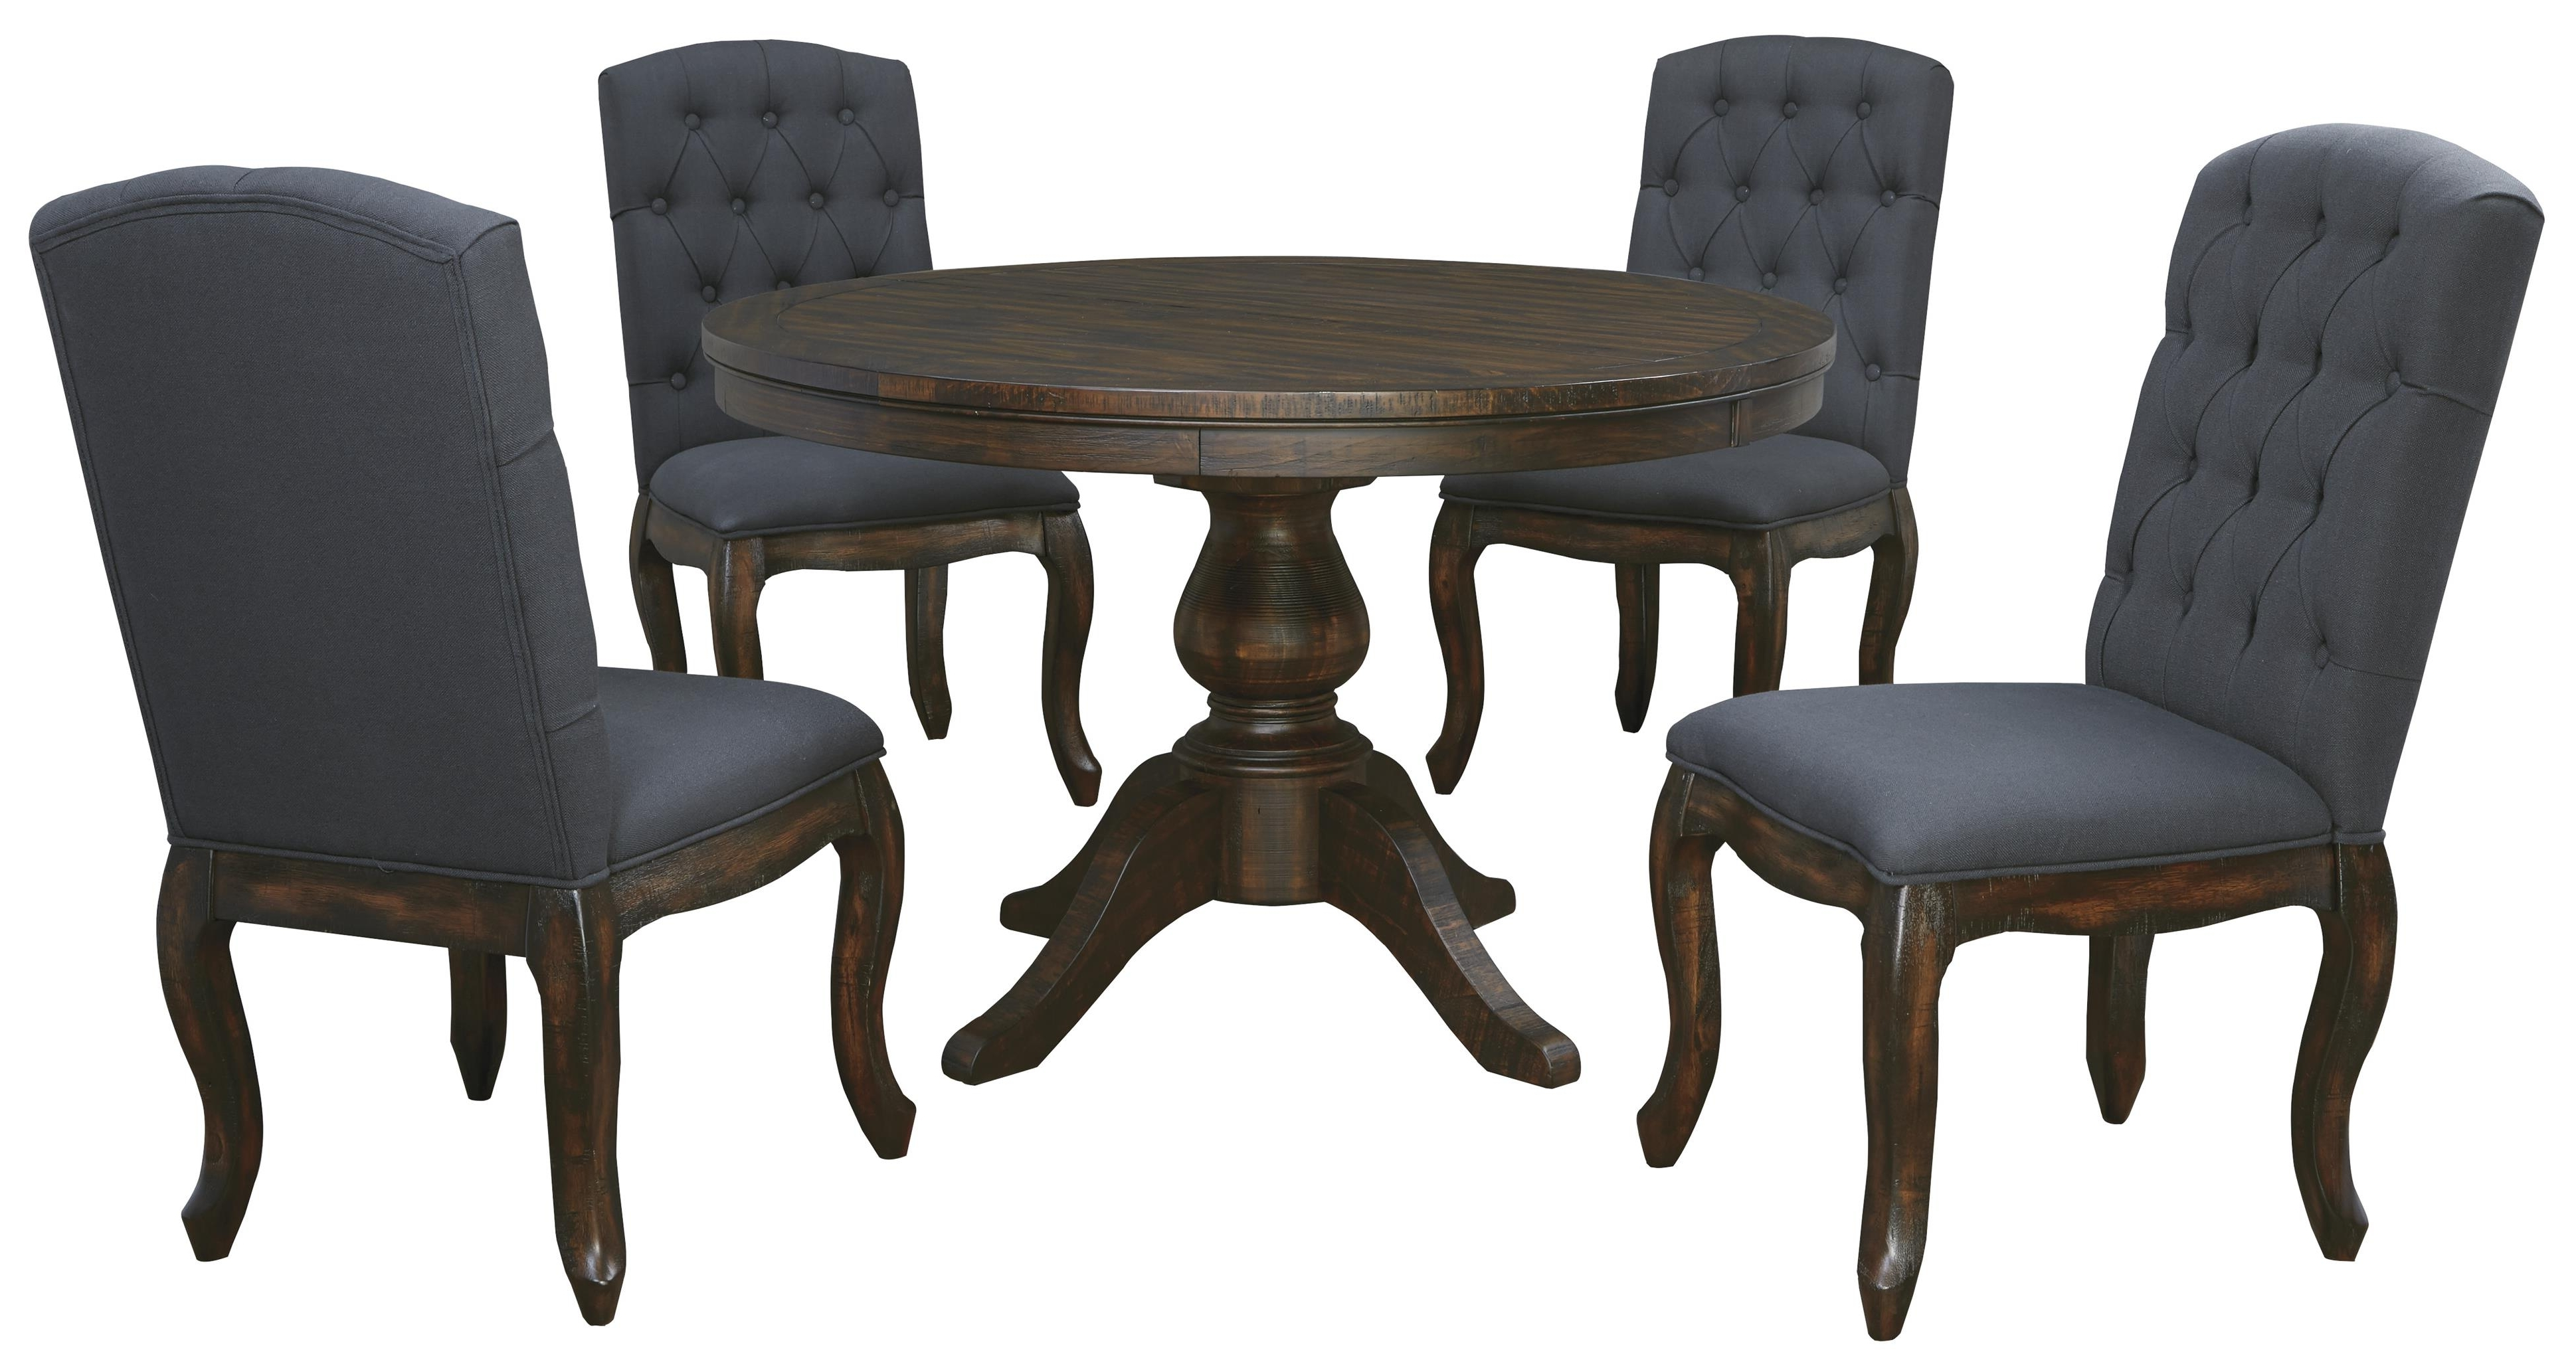 5 Piece Round Dining Table Set - Castrophotos intended for Well-liked Macie 5 Piece Round Dining Sets